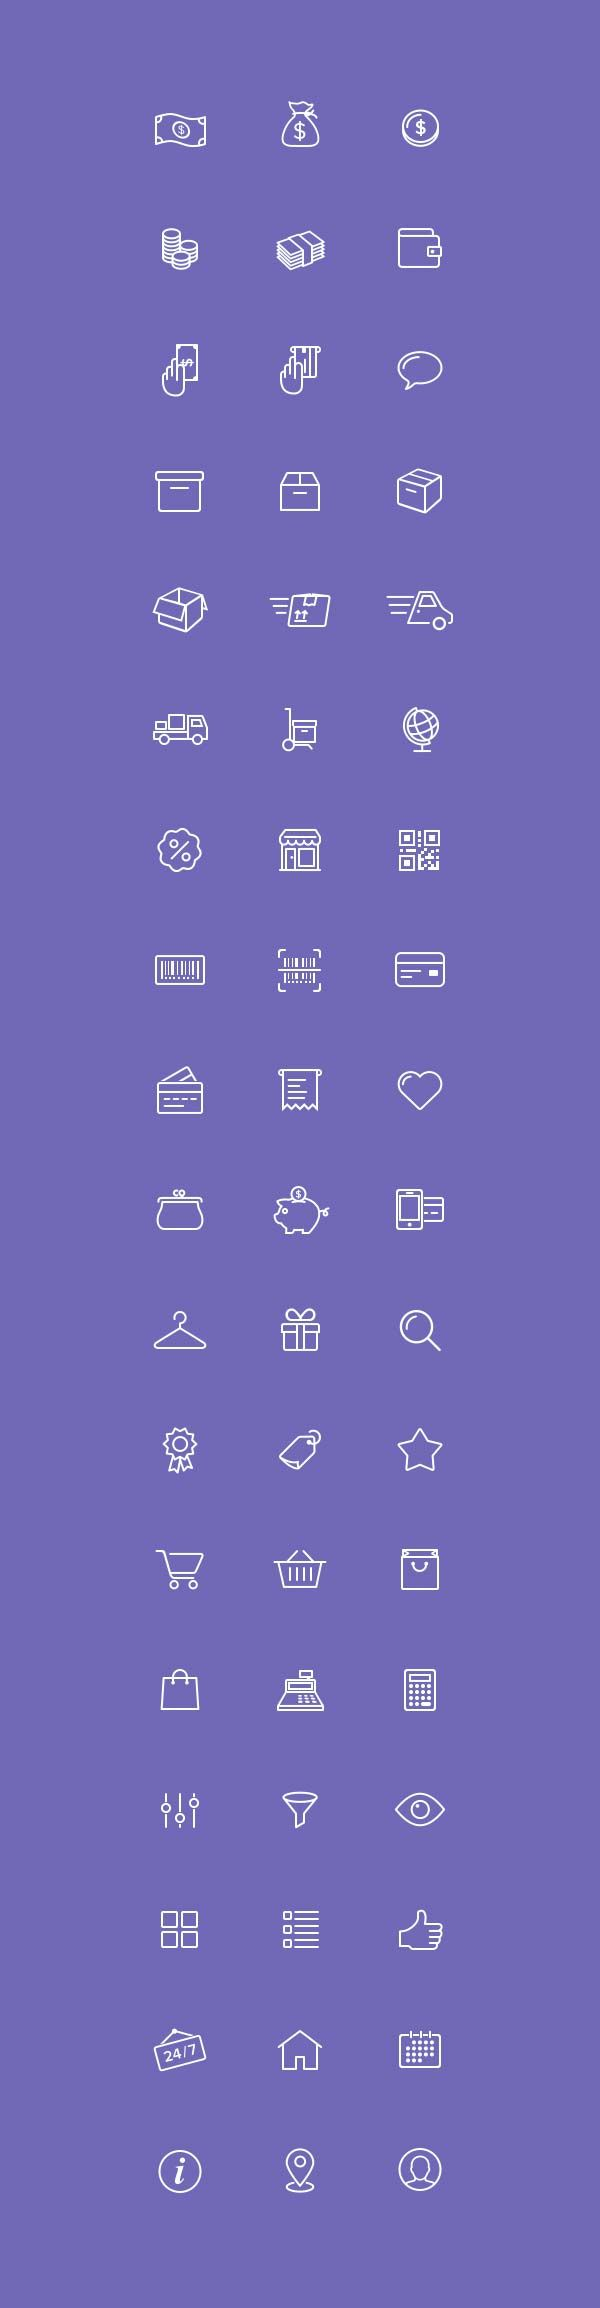 Wireless icon line iconset iconsmind - Free Download 54 E Commerce Icons Psd